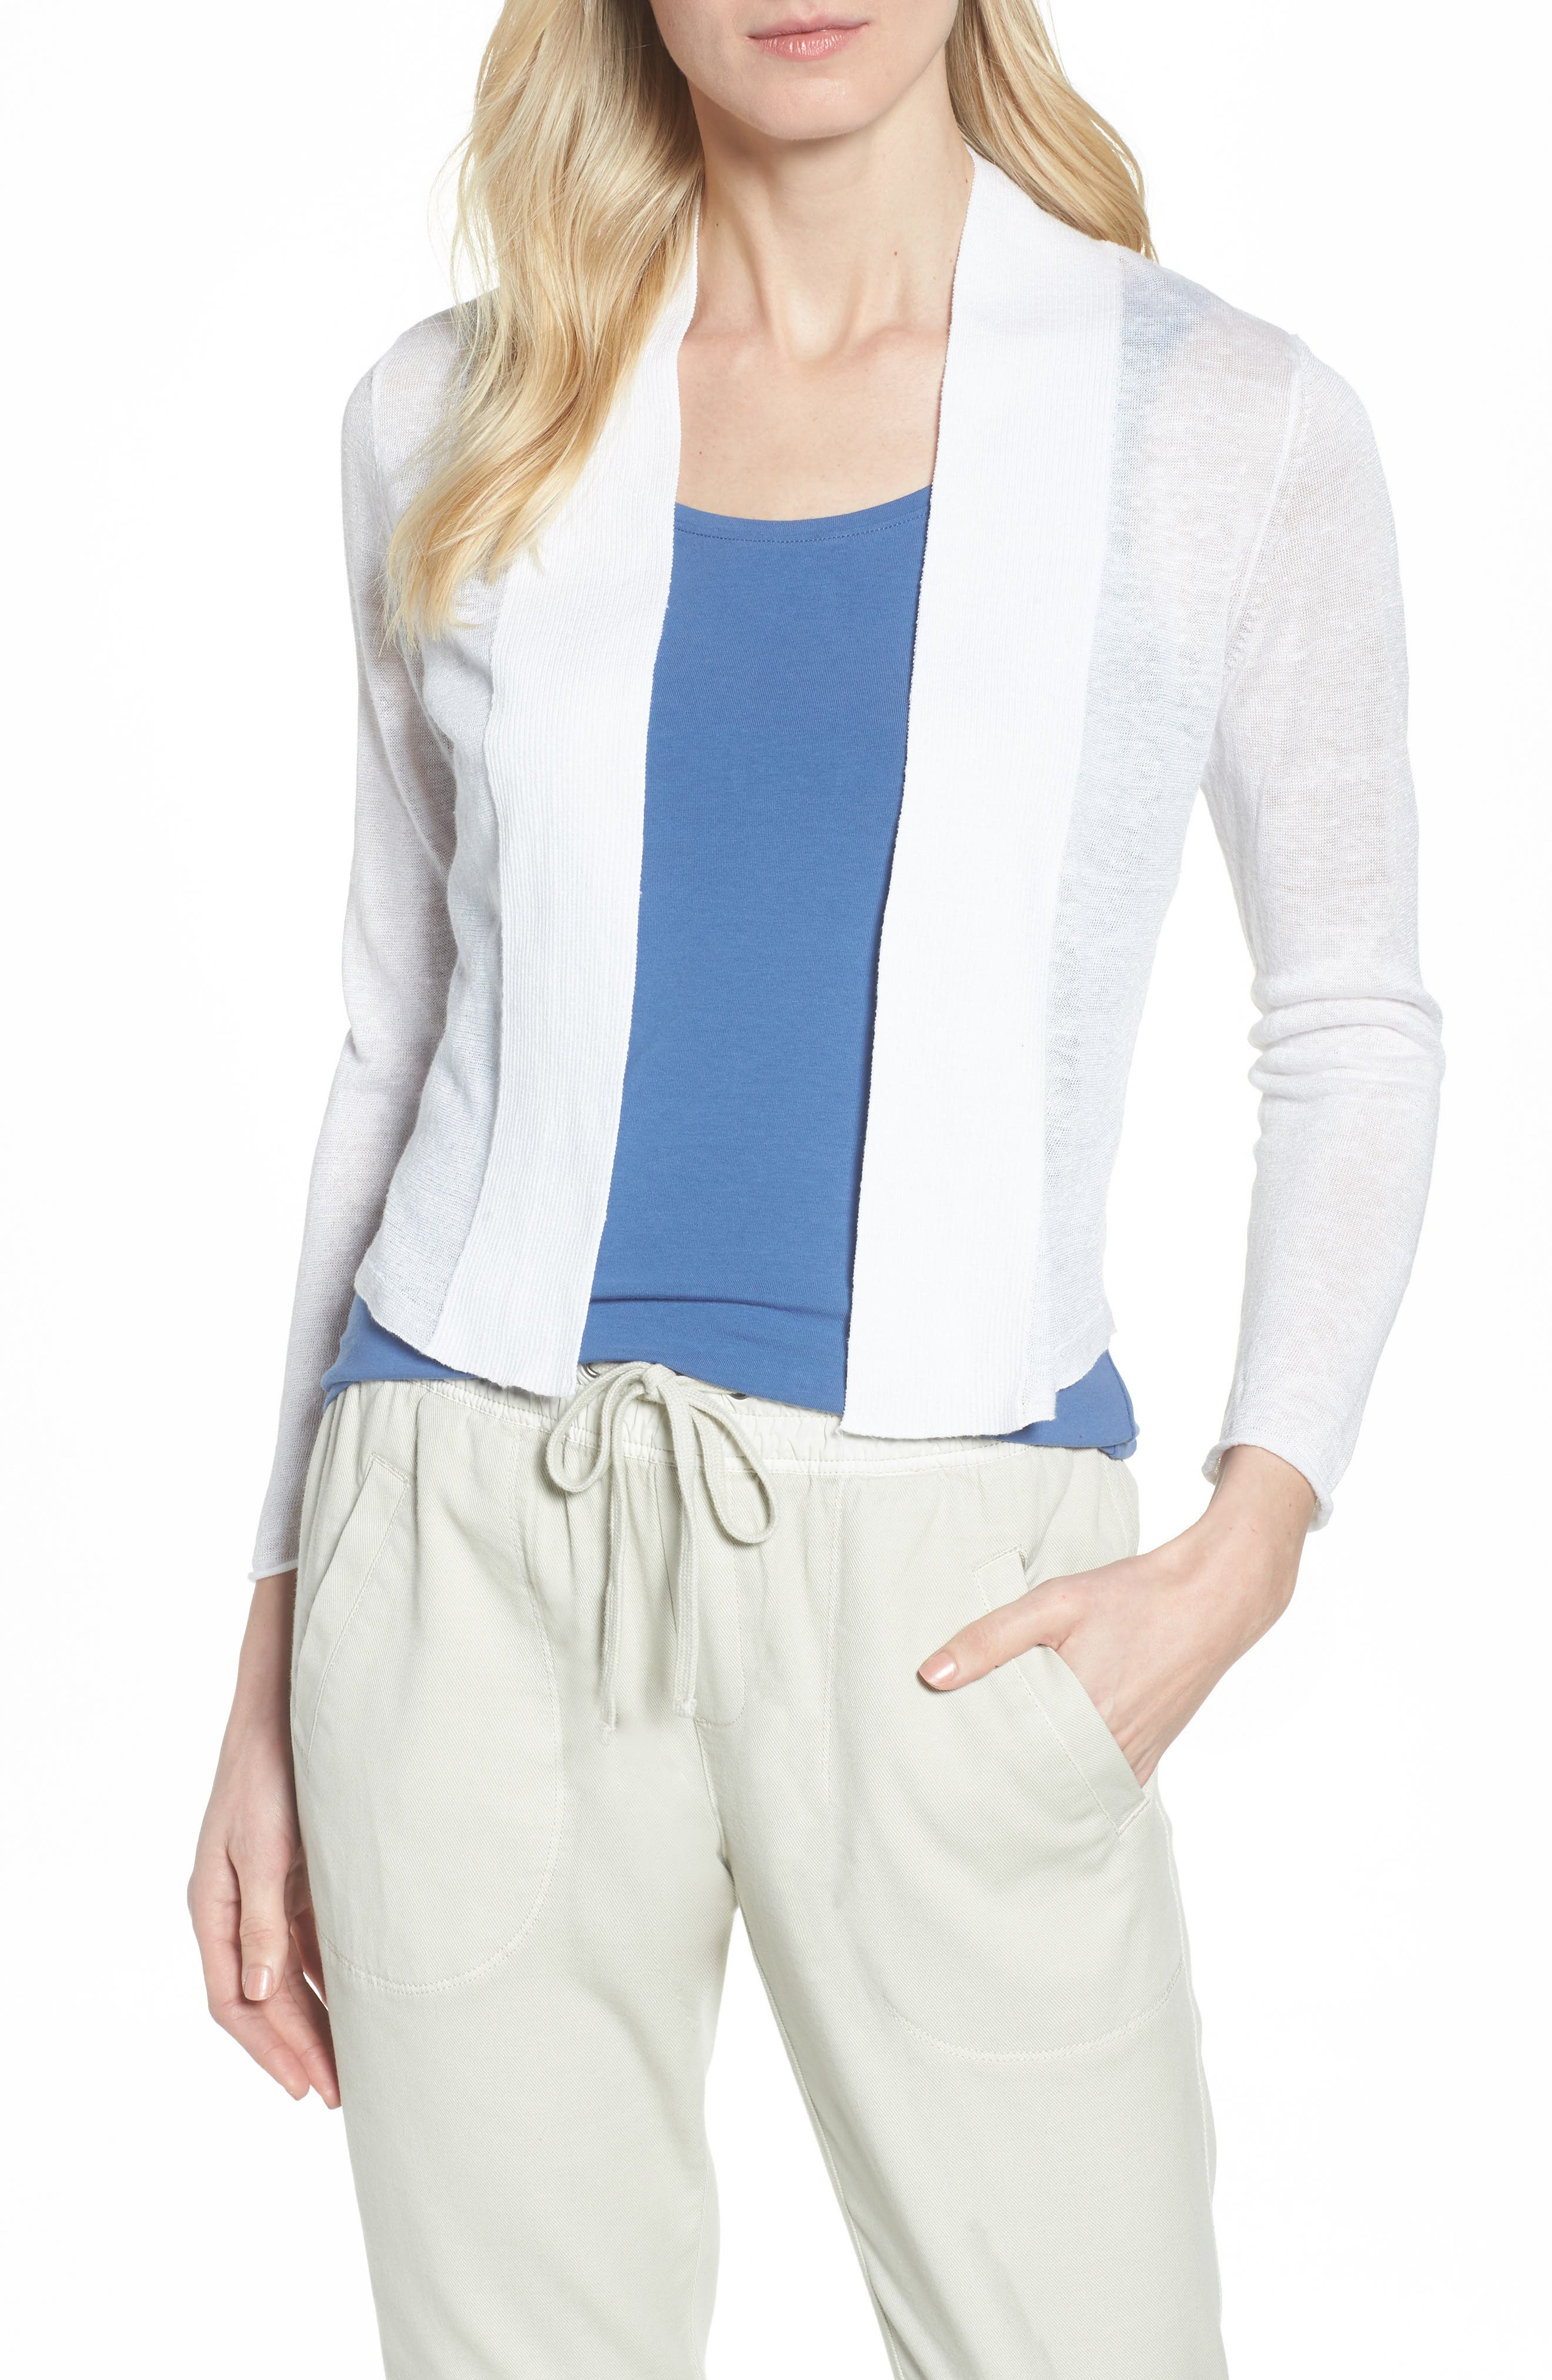 NIC + ZOE Daybreak Open Front Cardigan,                             Main thumbnail 1, color,                             123